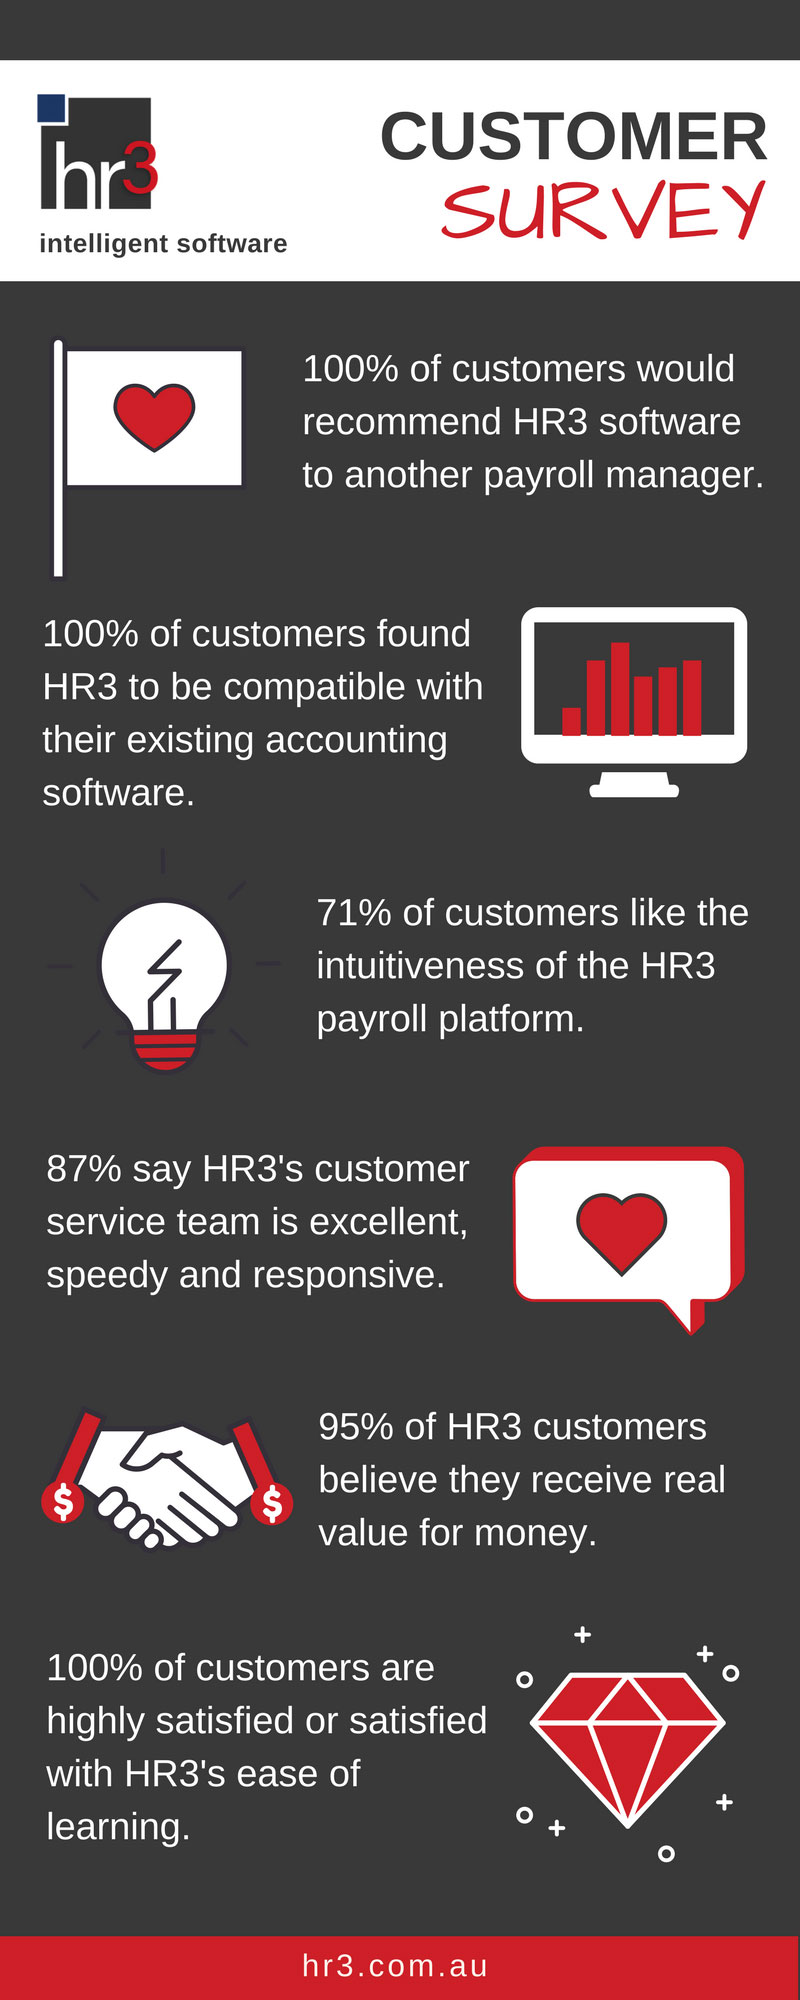 hr3-payroll-software-infographic-customer-reviews.jpg